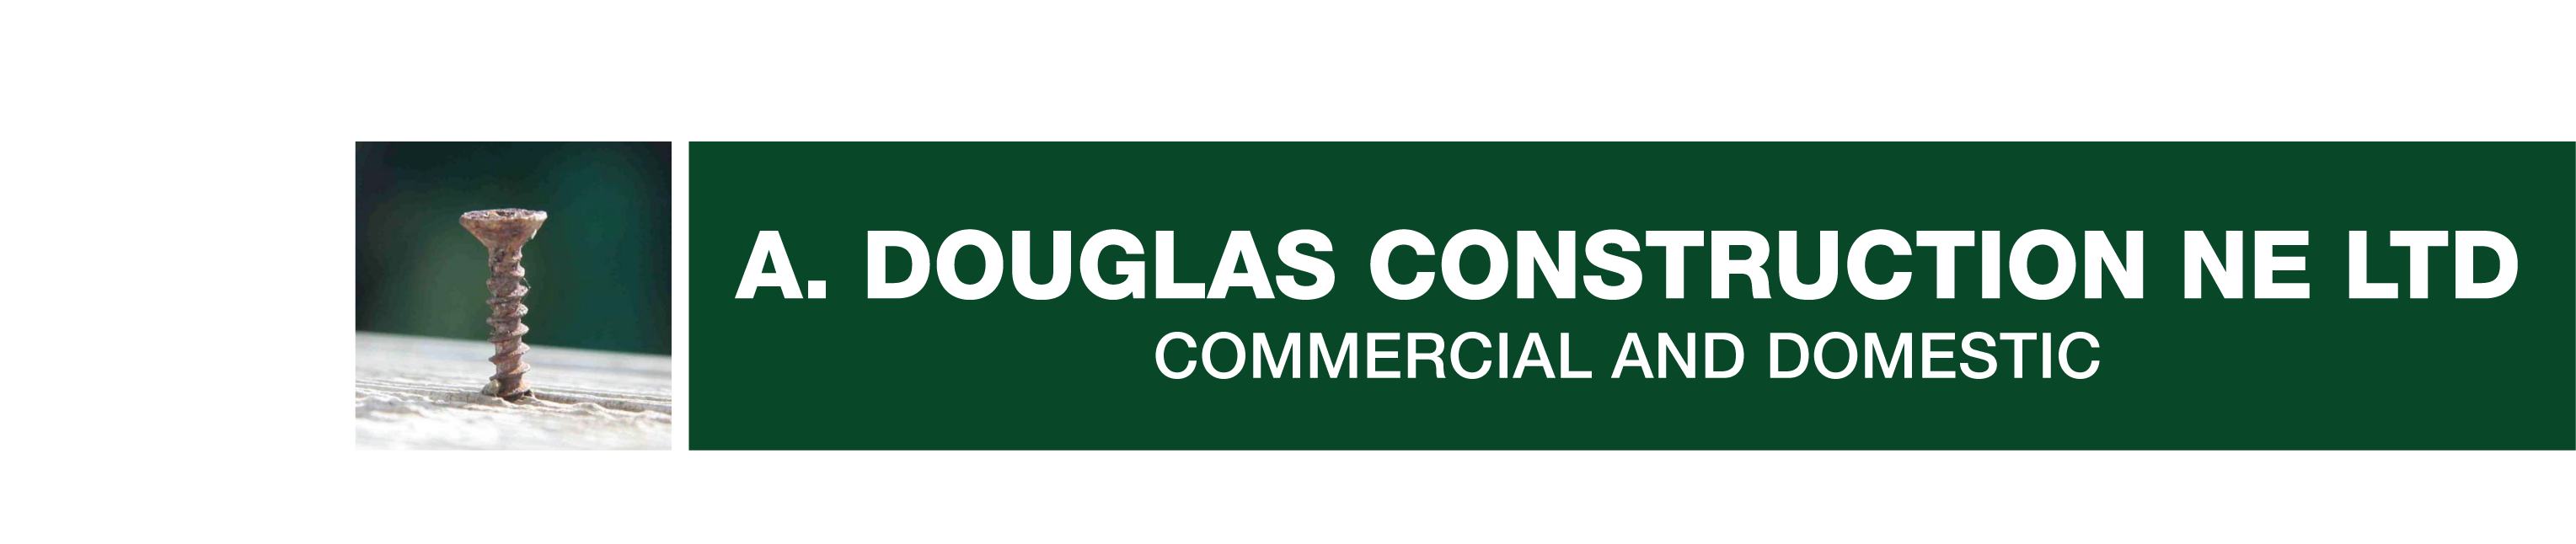 A Douglas Construction